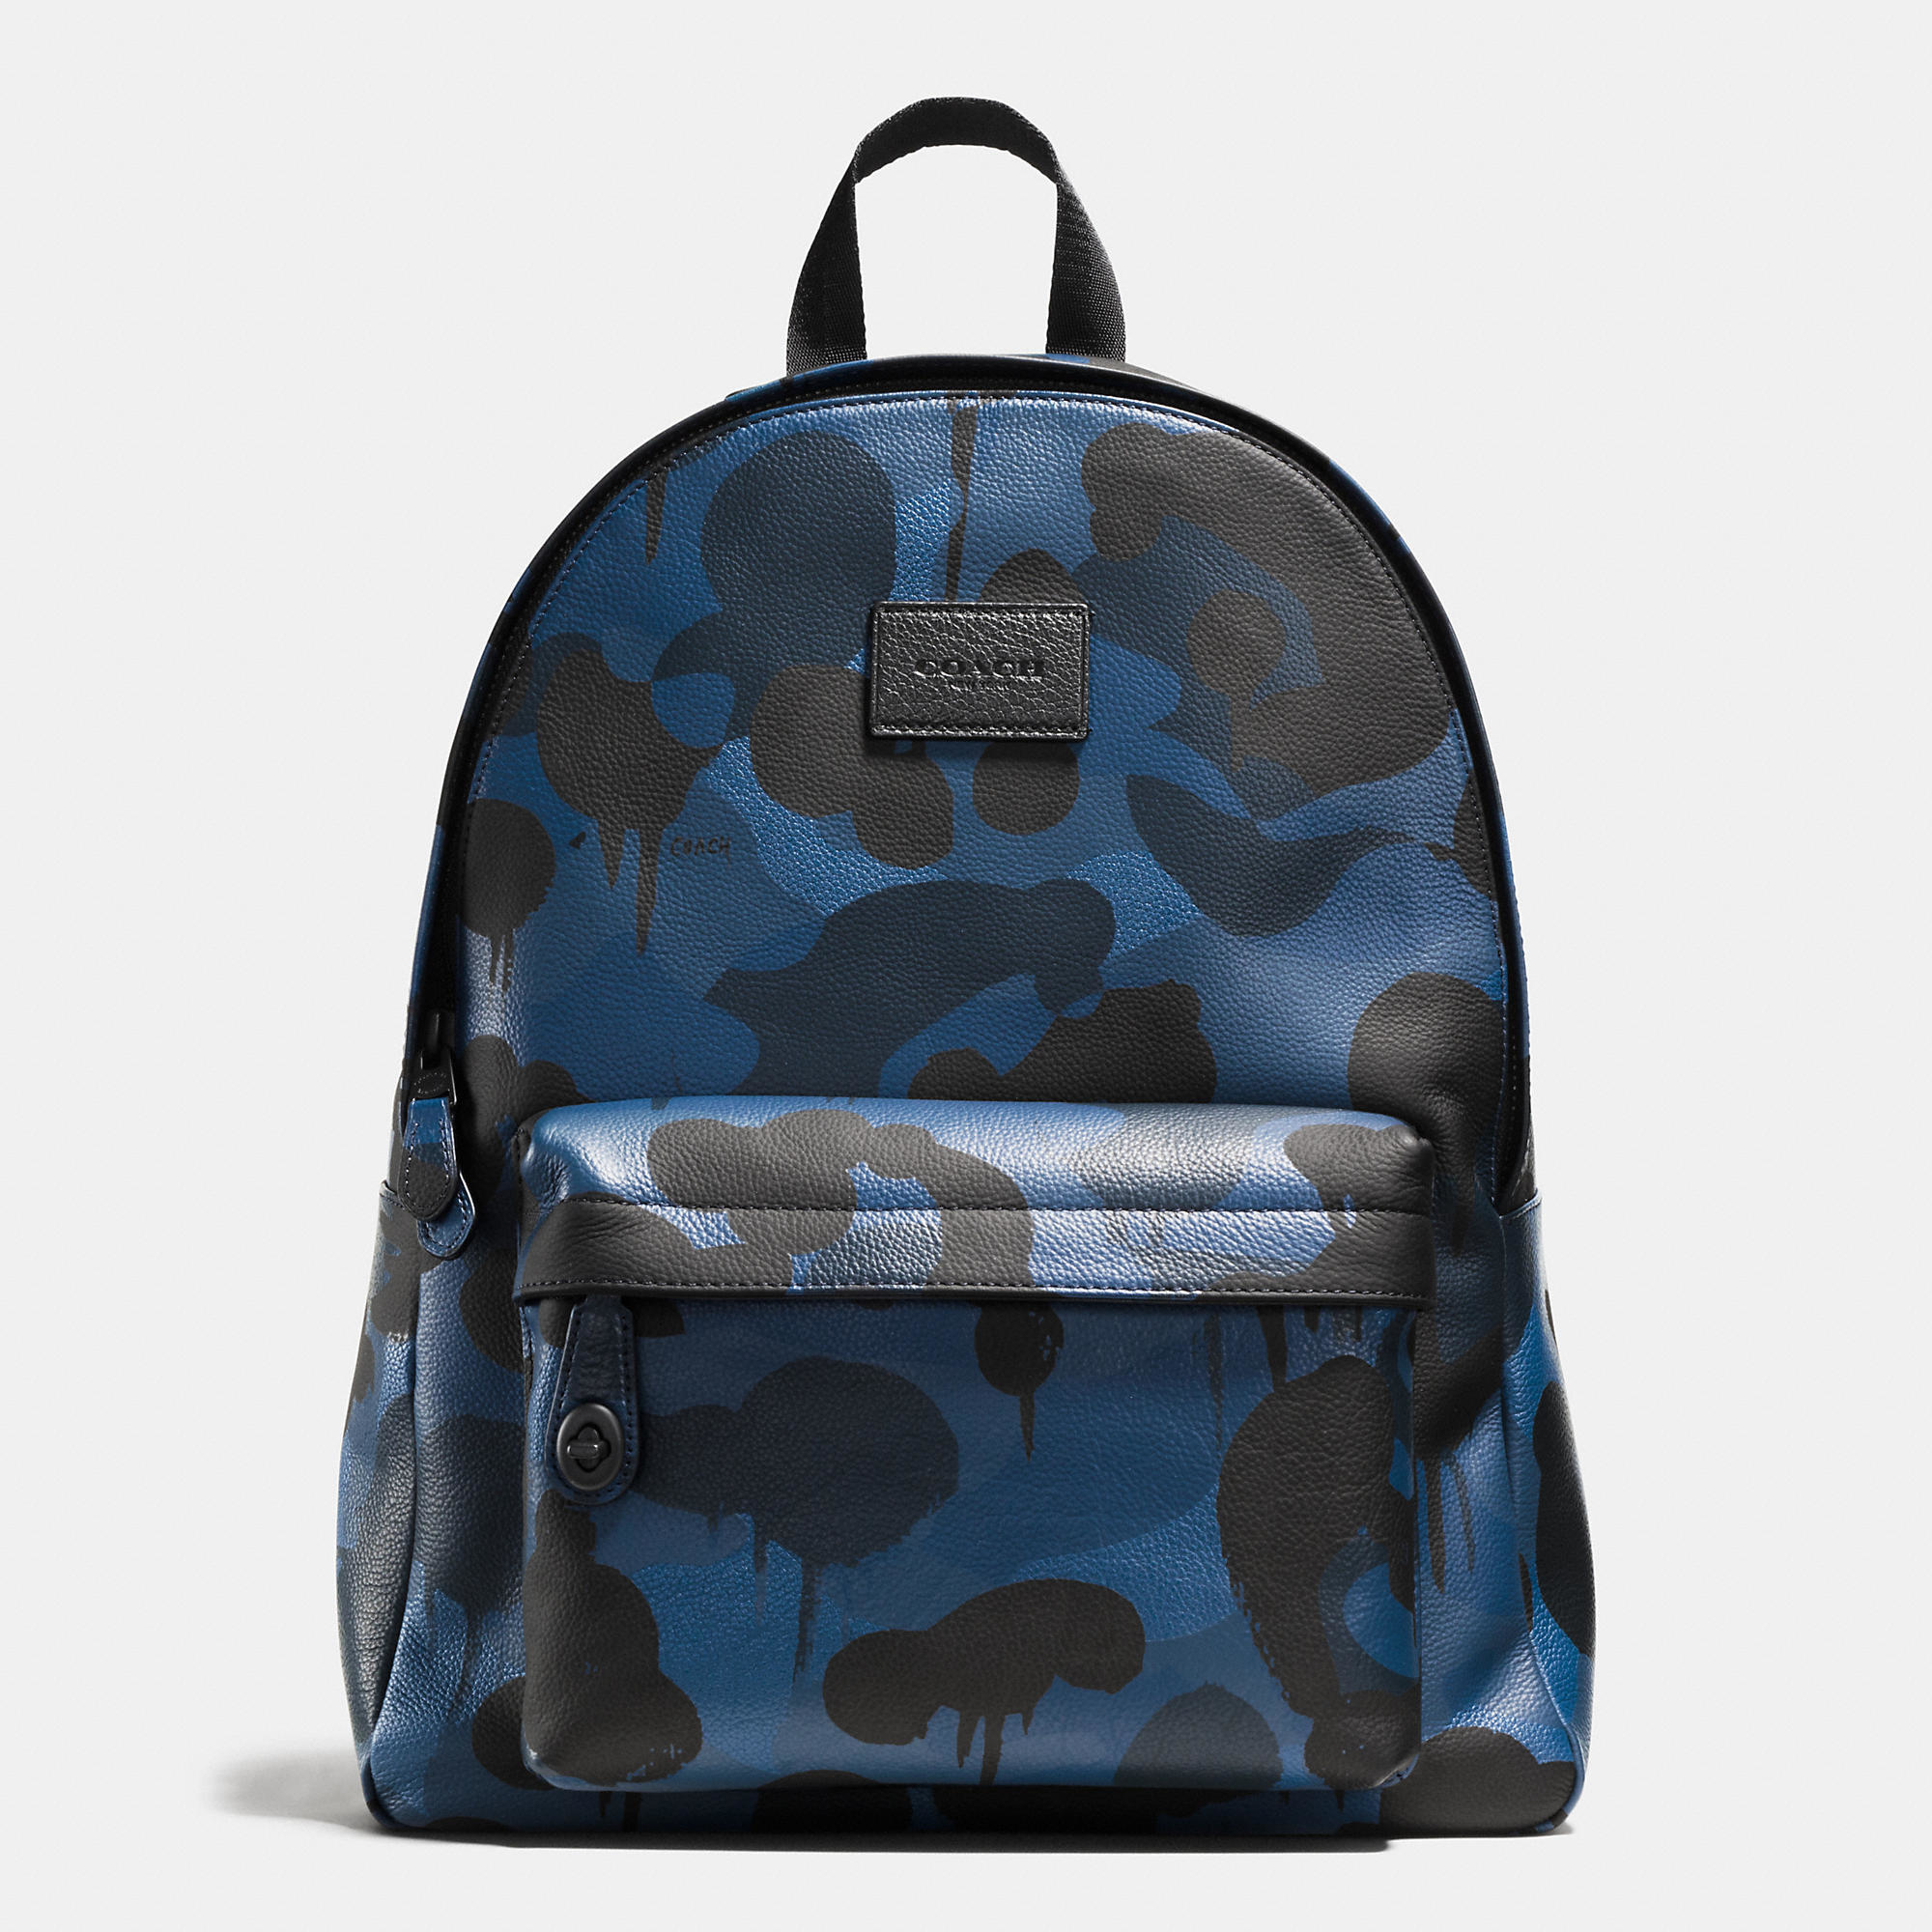 COACH : Green Campus Backpack In Printed Pebble Leather for Men : Lyst